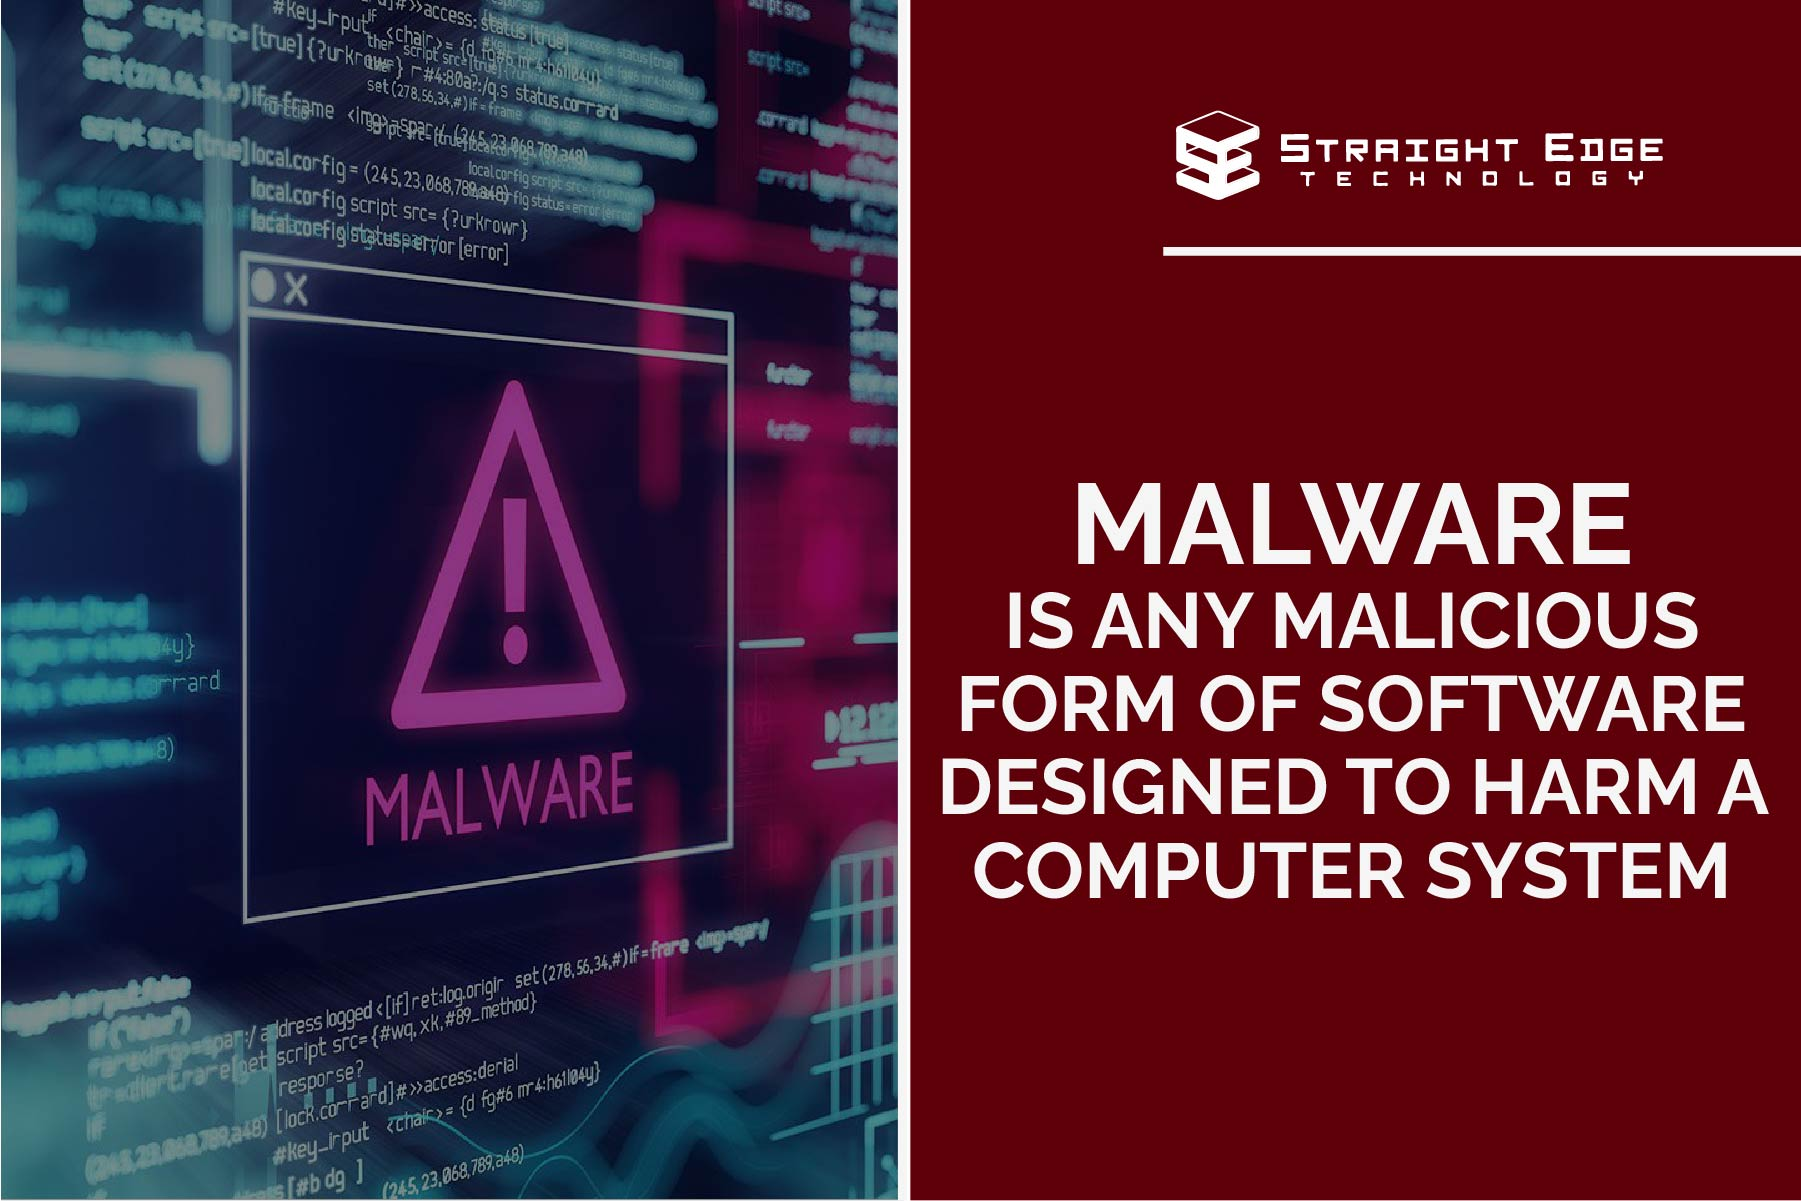 malware is any malicious form of software